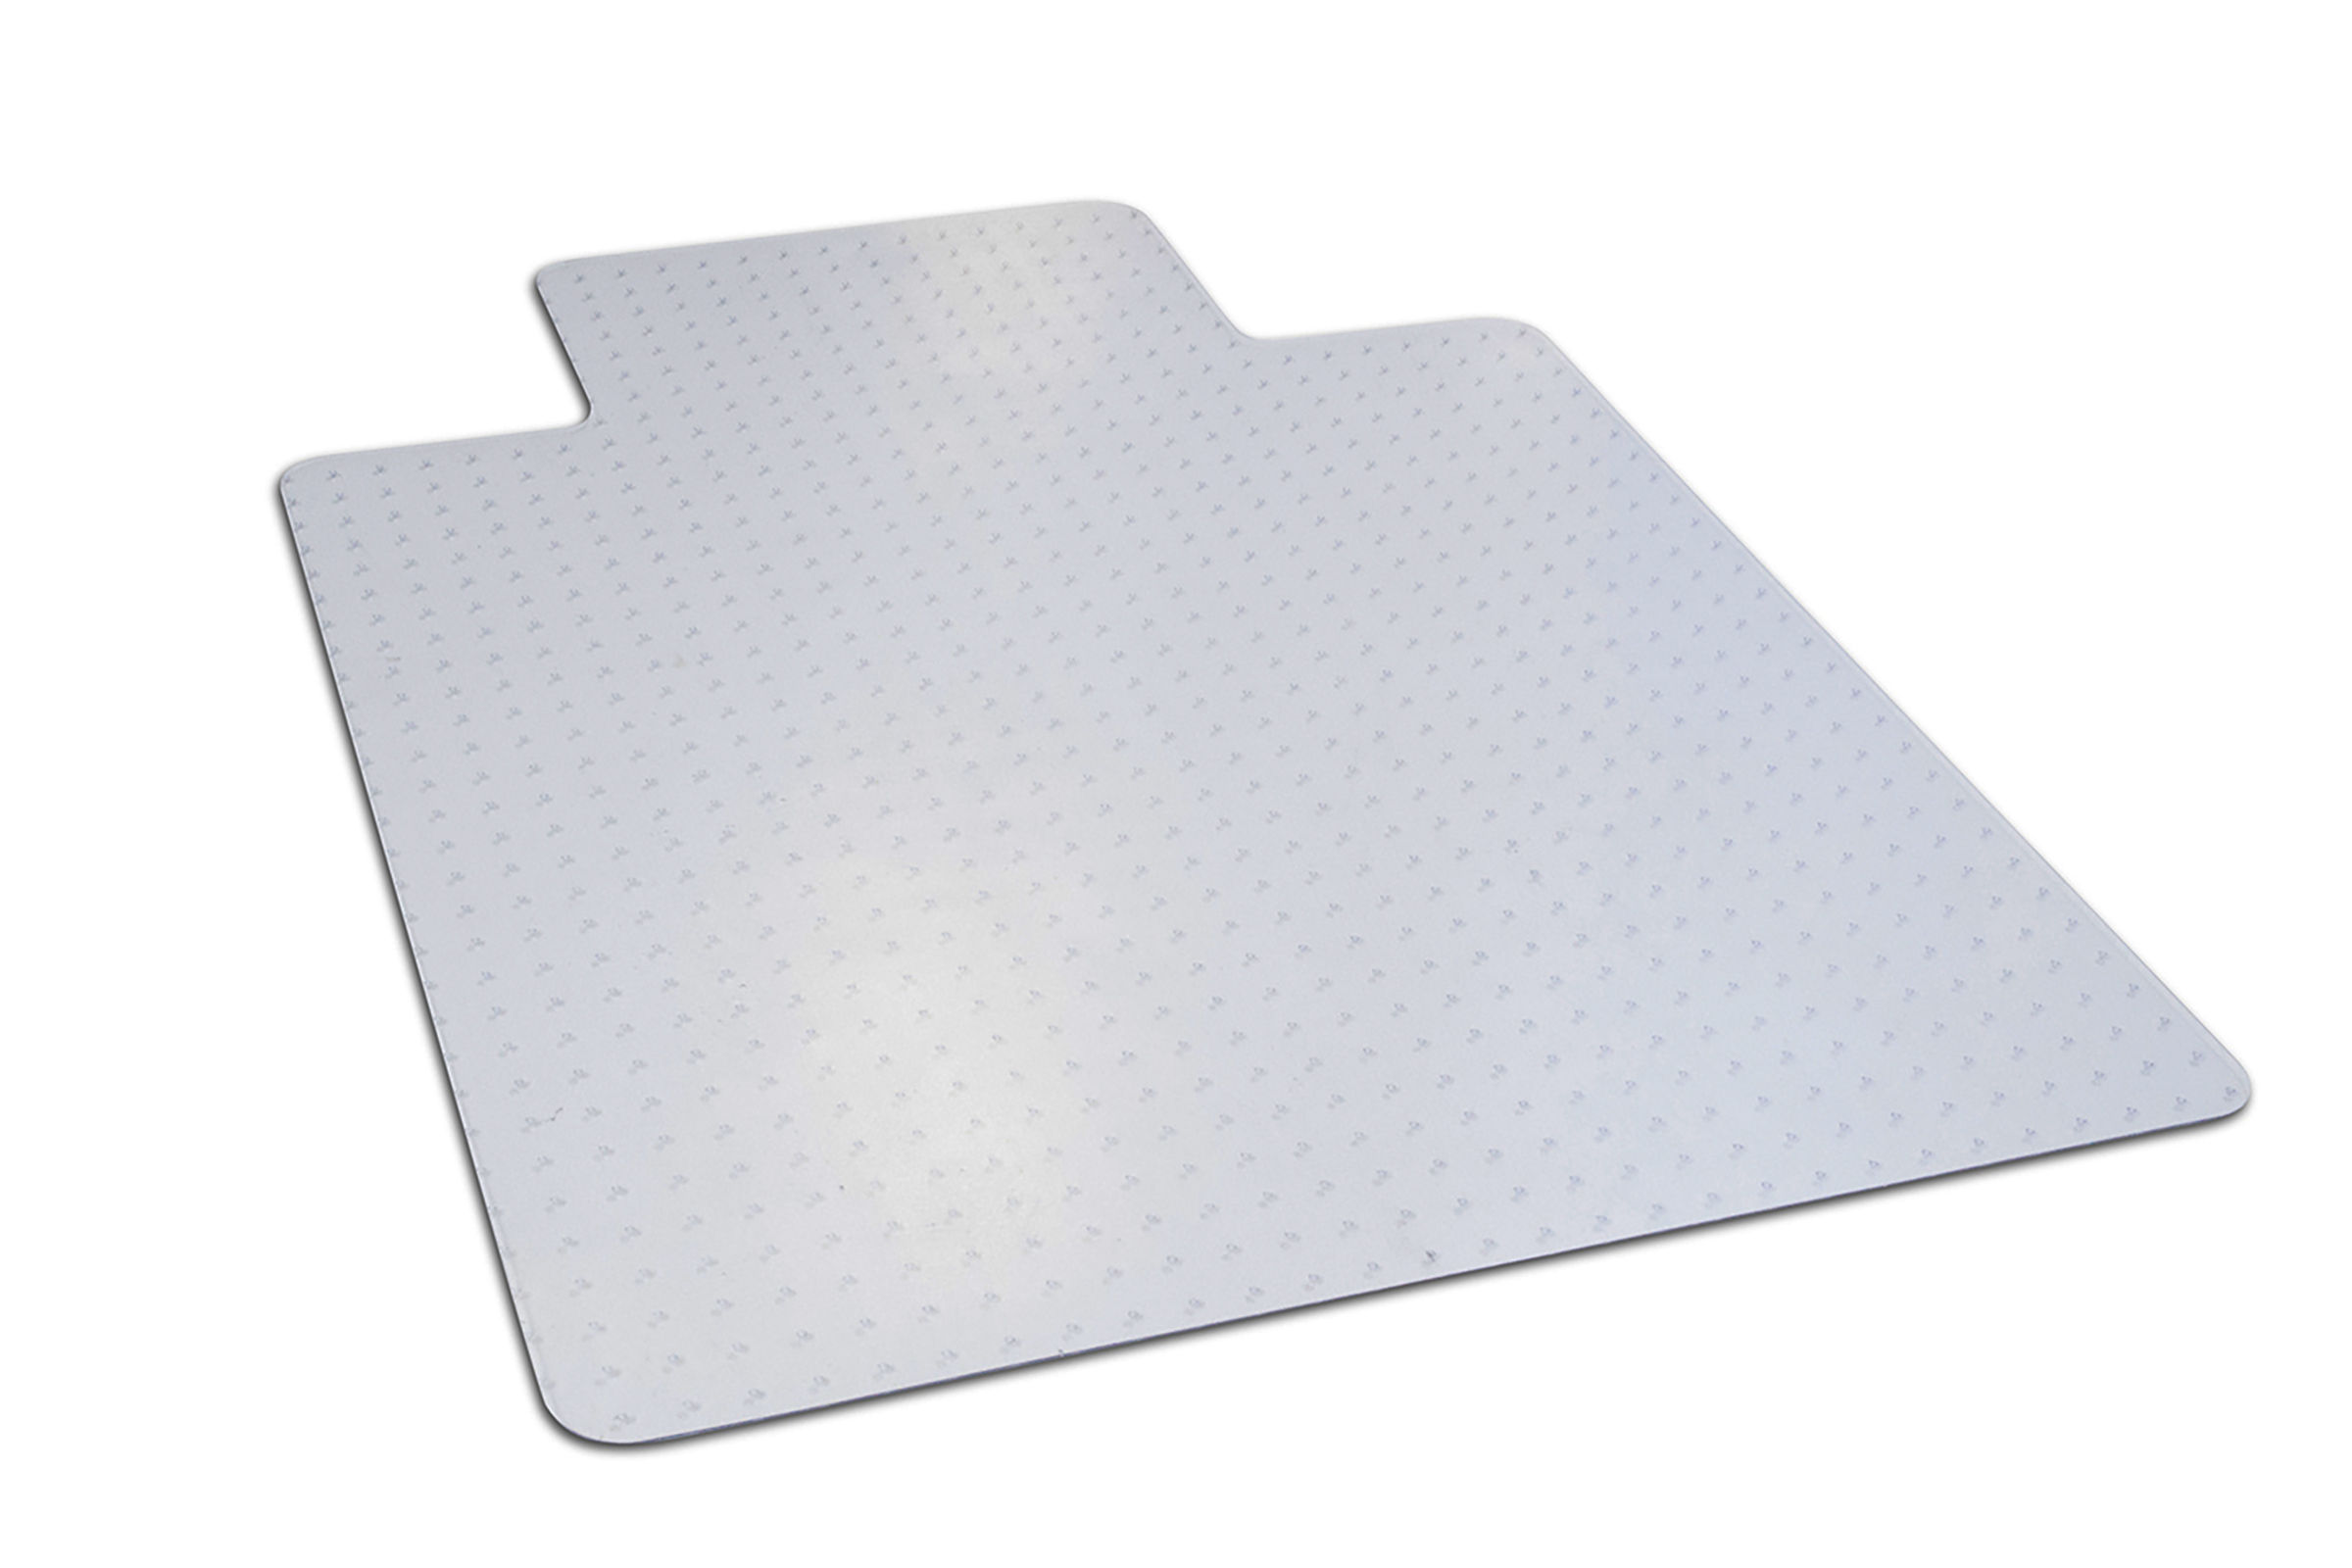 chair mat for carpet walmart cardboard designs dimex clear office with lip low pile